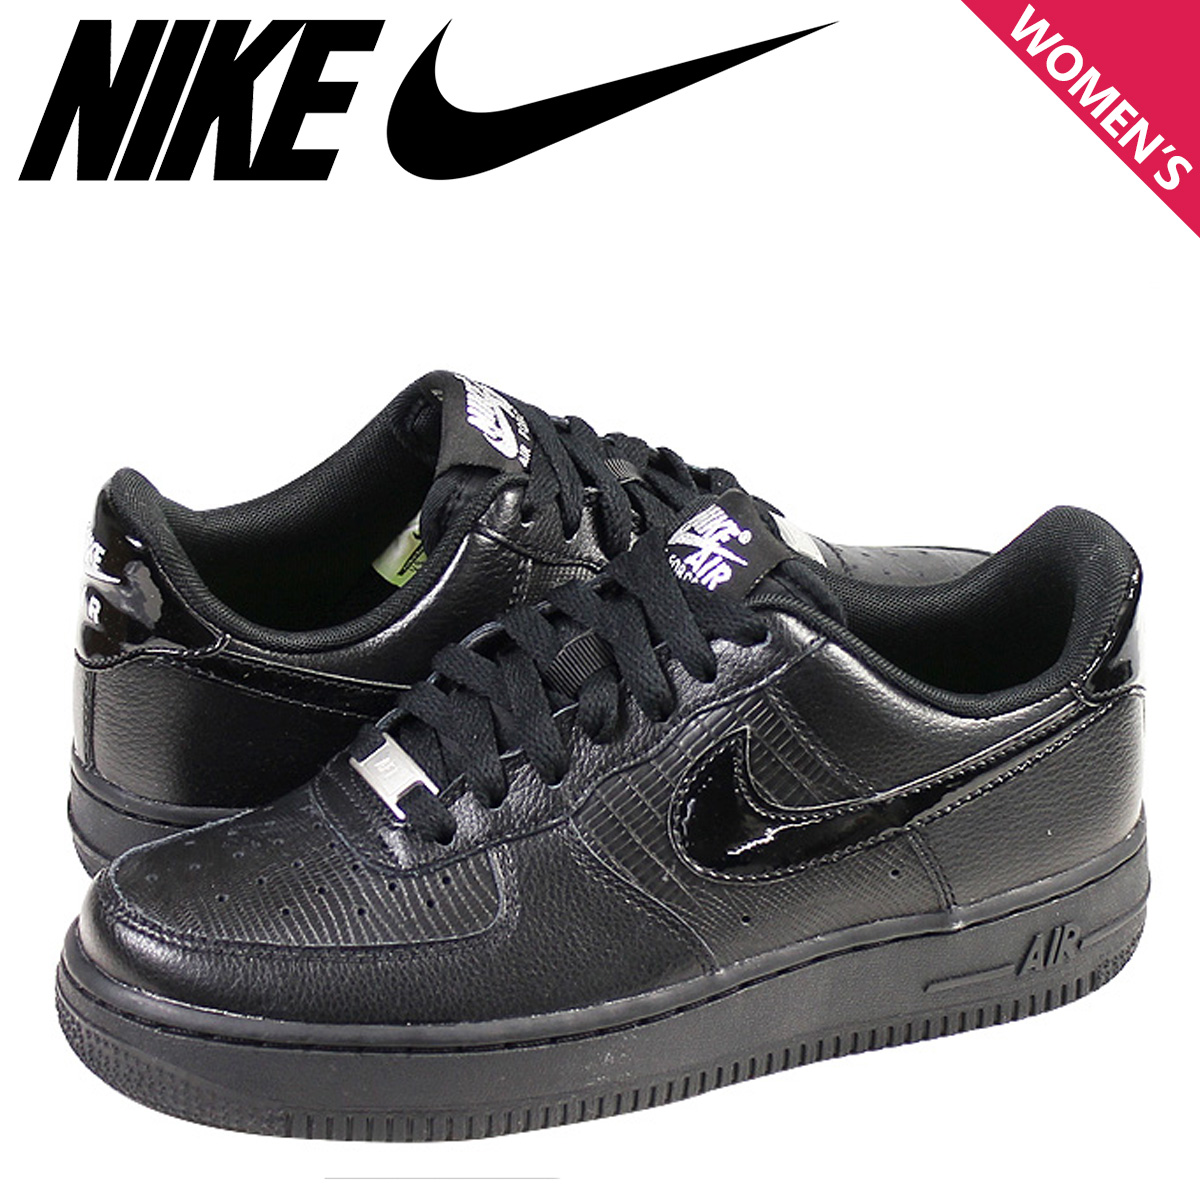 89be856e Nike NIKE Womens WMNS AIR FORCE 1 07 LE sneakers air force 1 07 limited  edition leather mens 315115-037 BLACK/BLACK black [11 / 7 new in stock]  [regular]